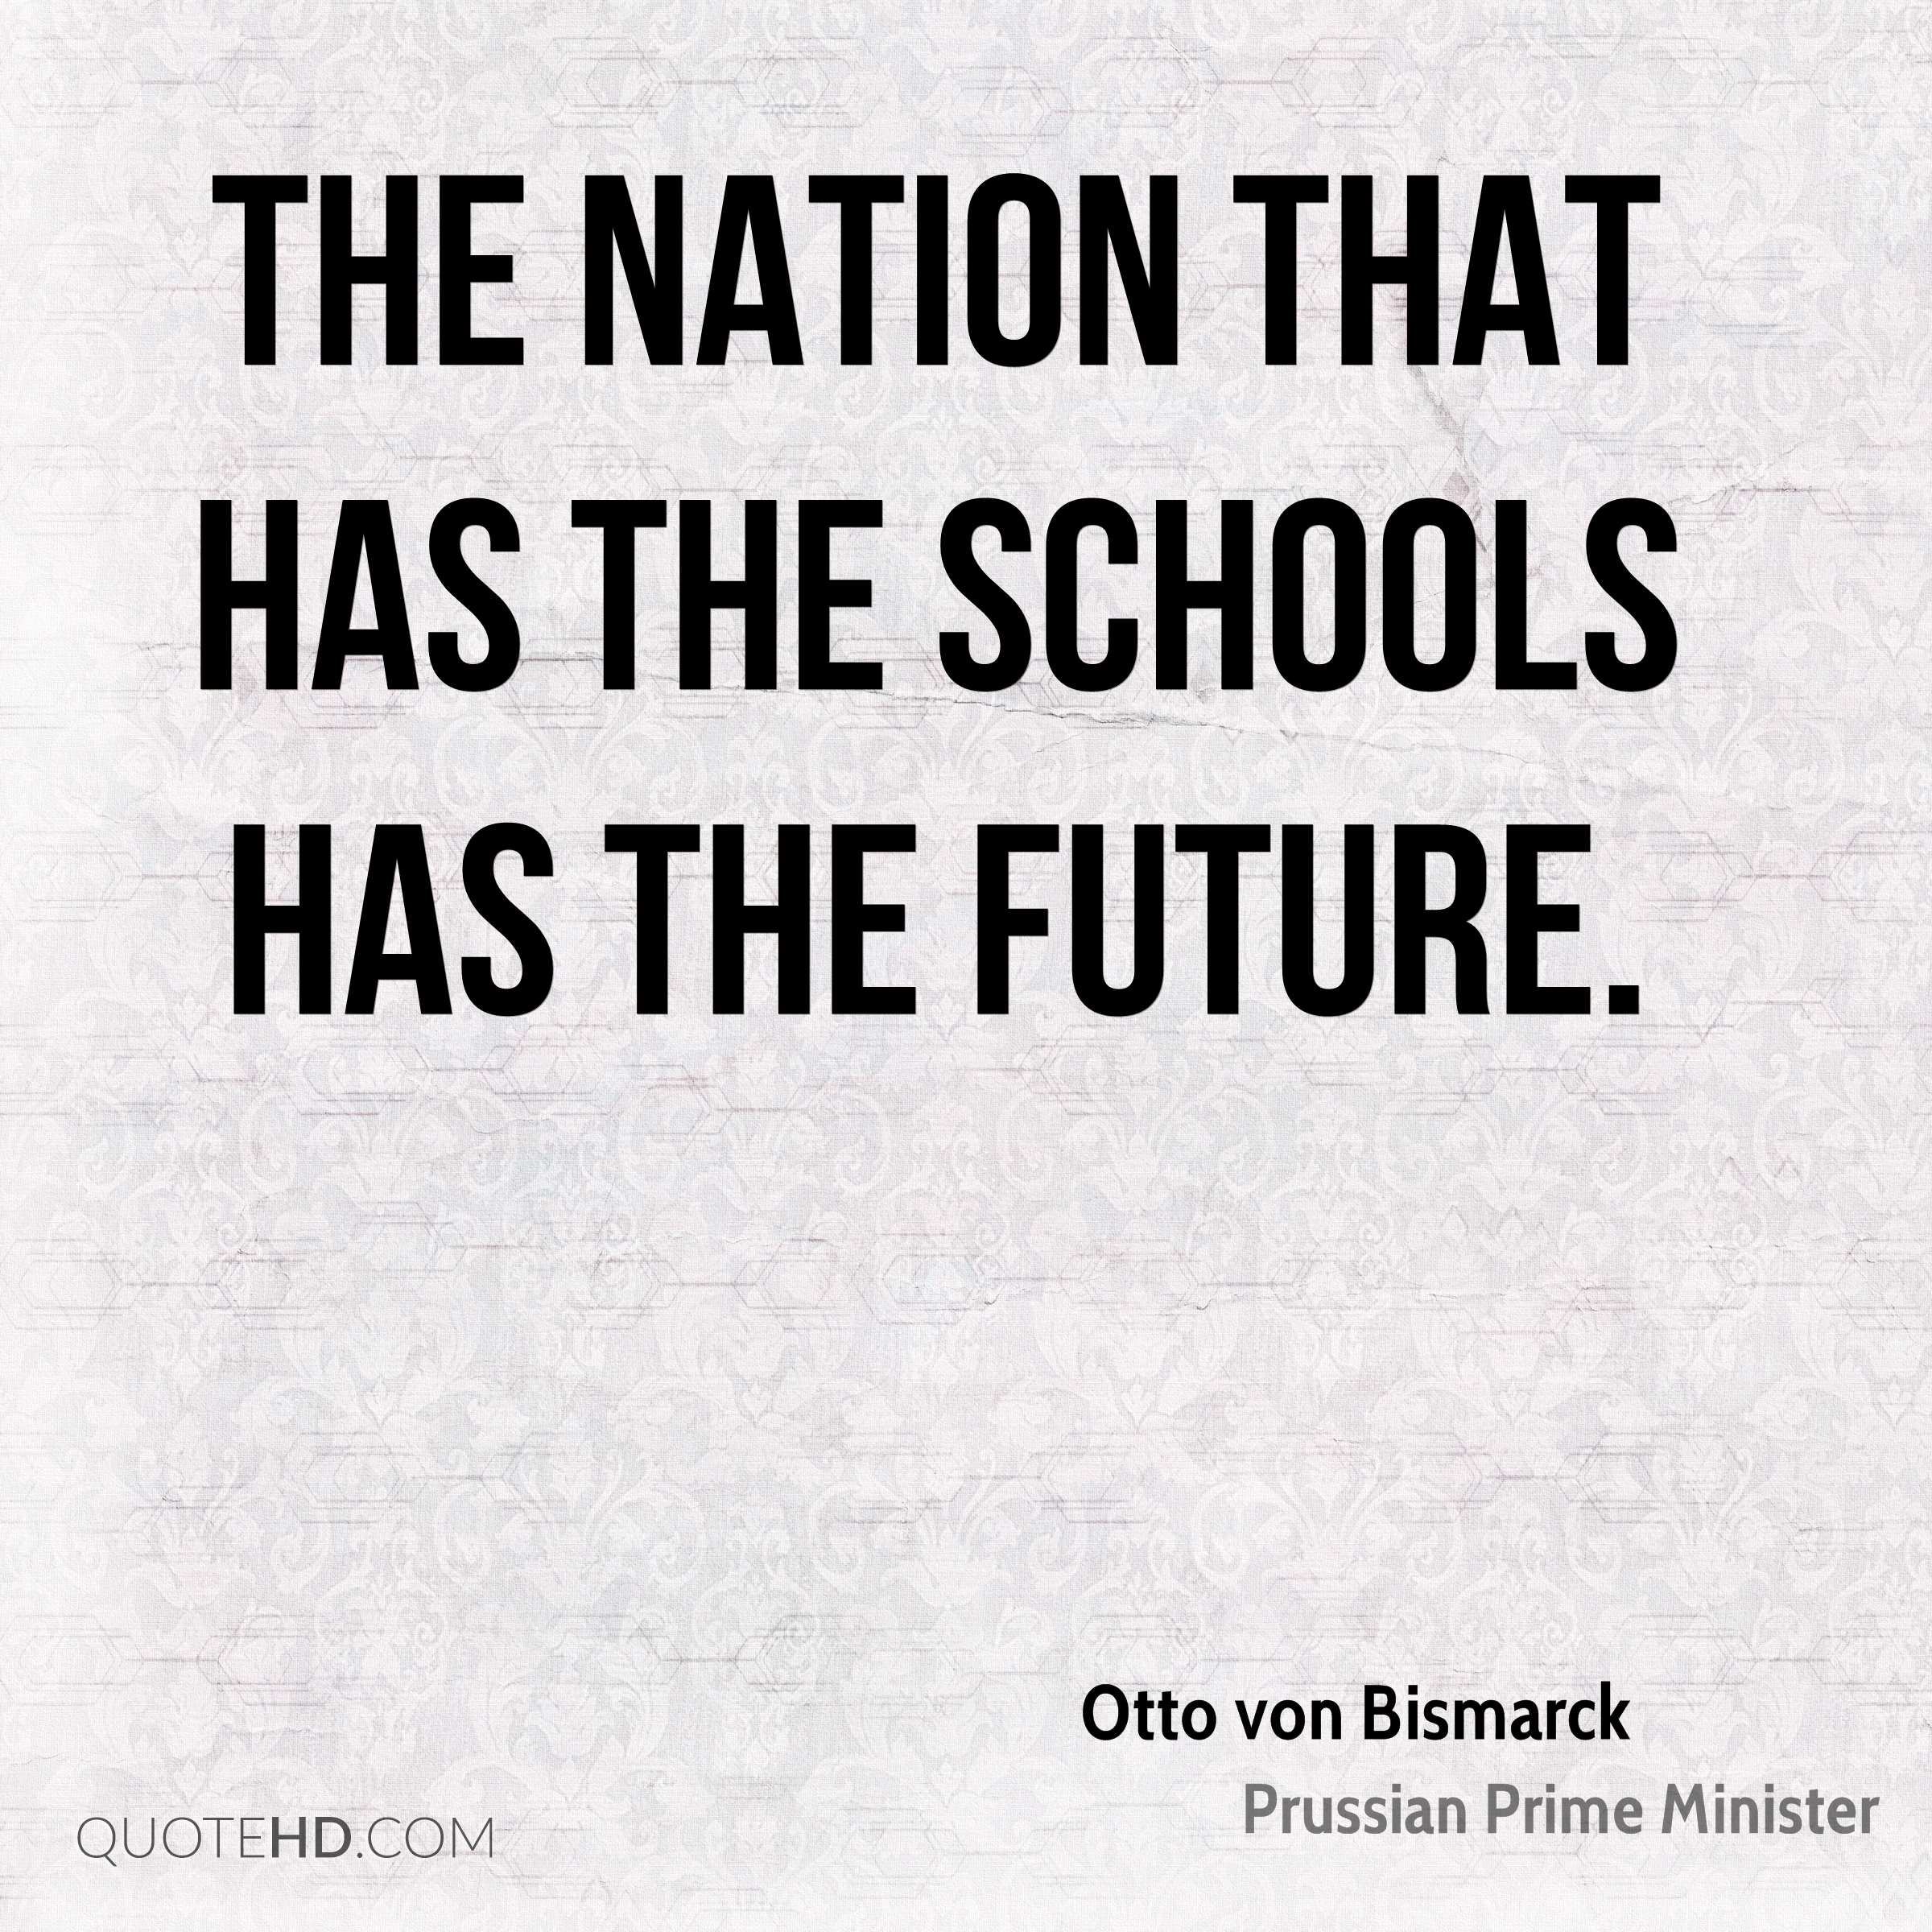 The nation that has the schools has the future.